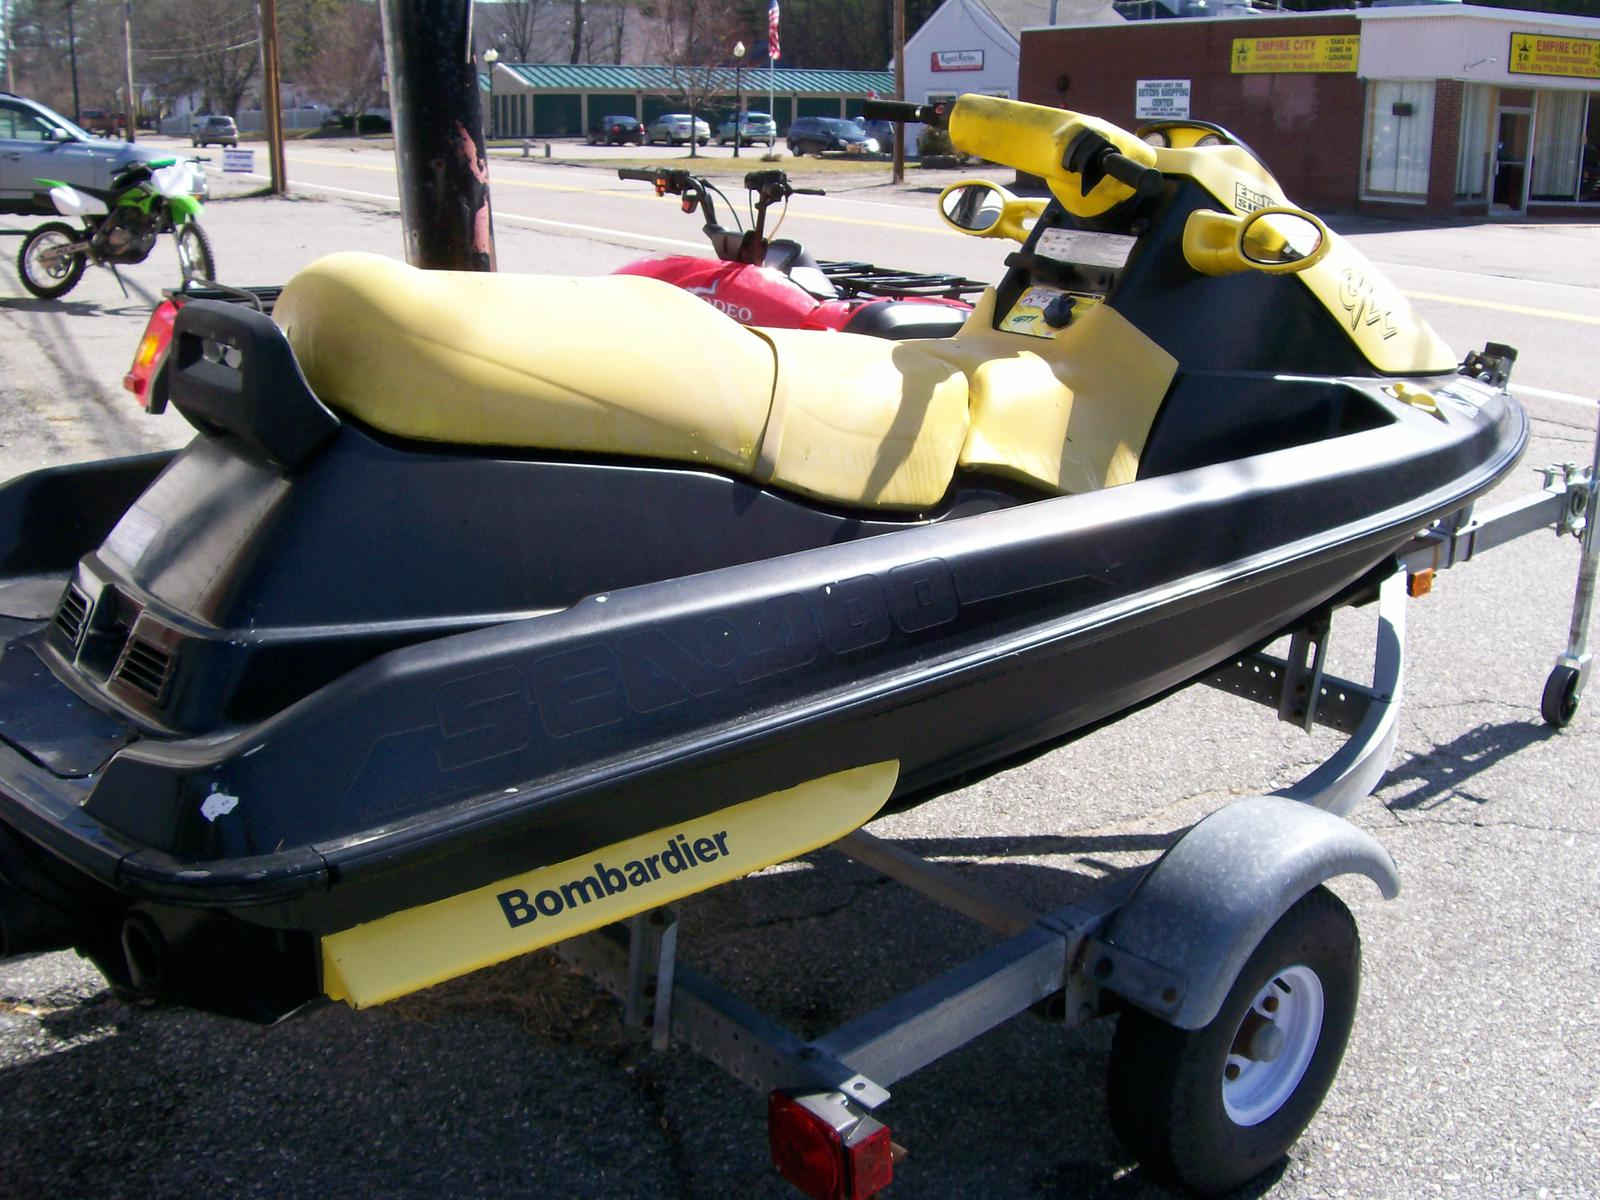 1996 Seadoo Bombardier 96 Sea Doo Gtx Wiring Diagram Jet Ski For Sale In Acton Ma Bikeworx Rh Com